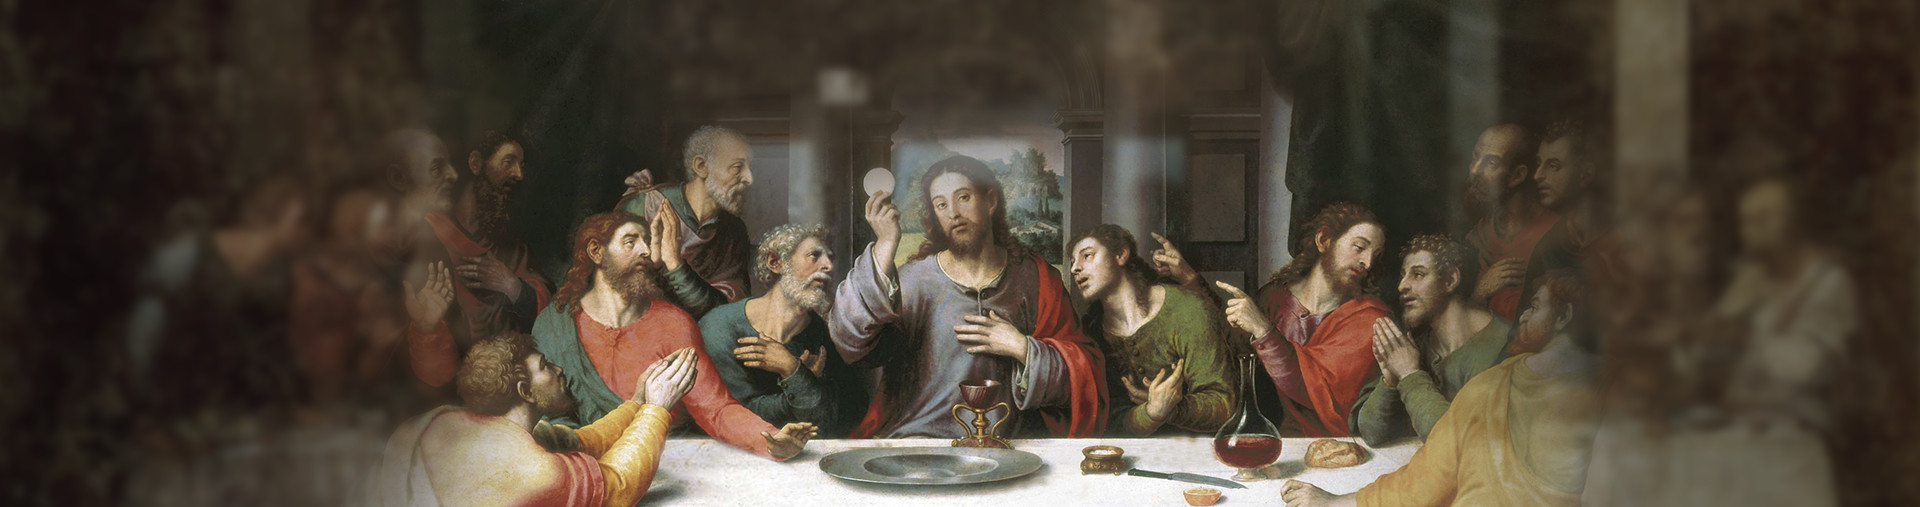 the song of the last supper biblical hebrew insights